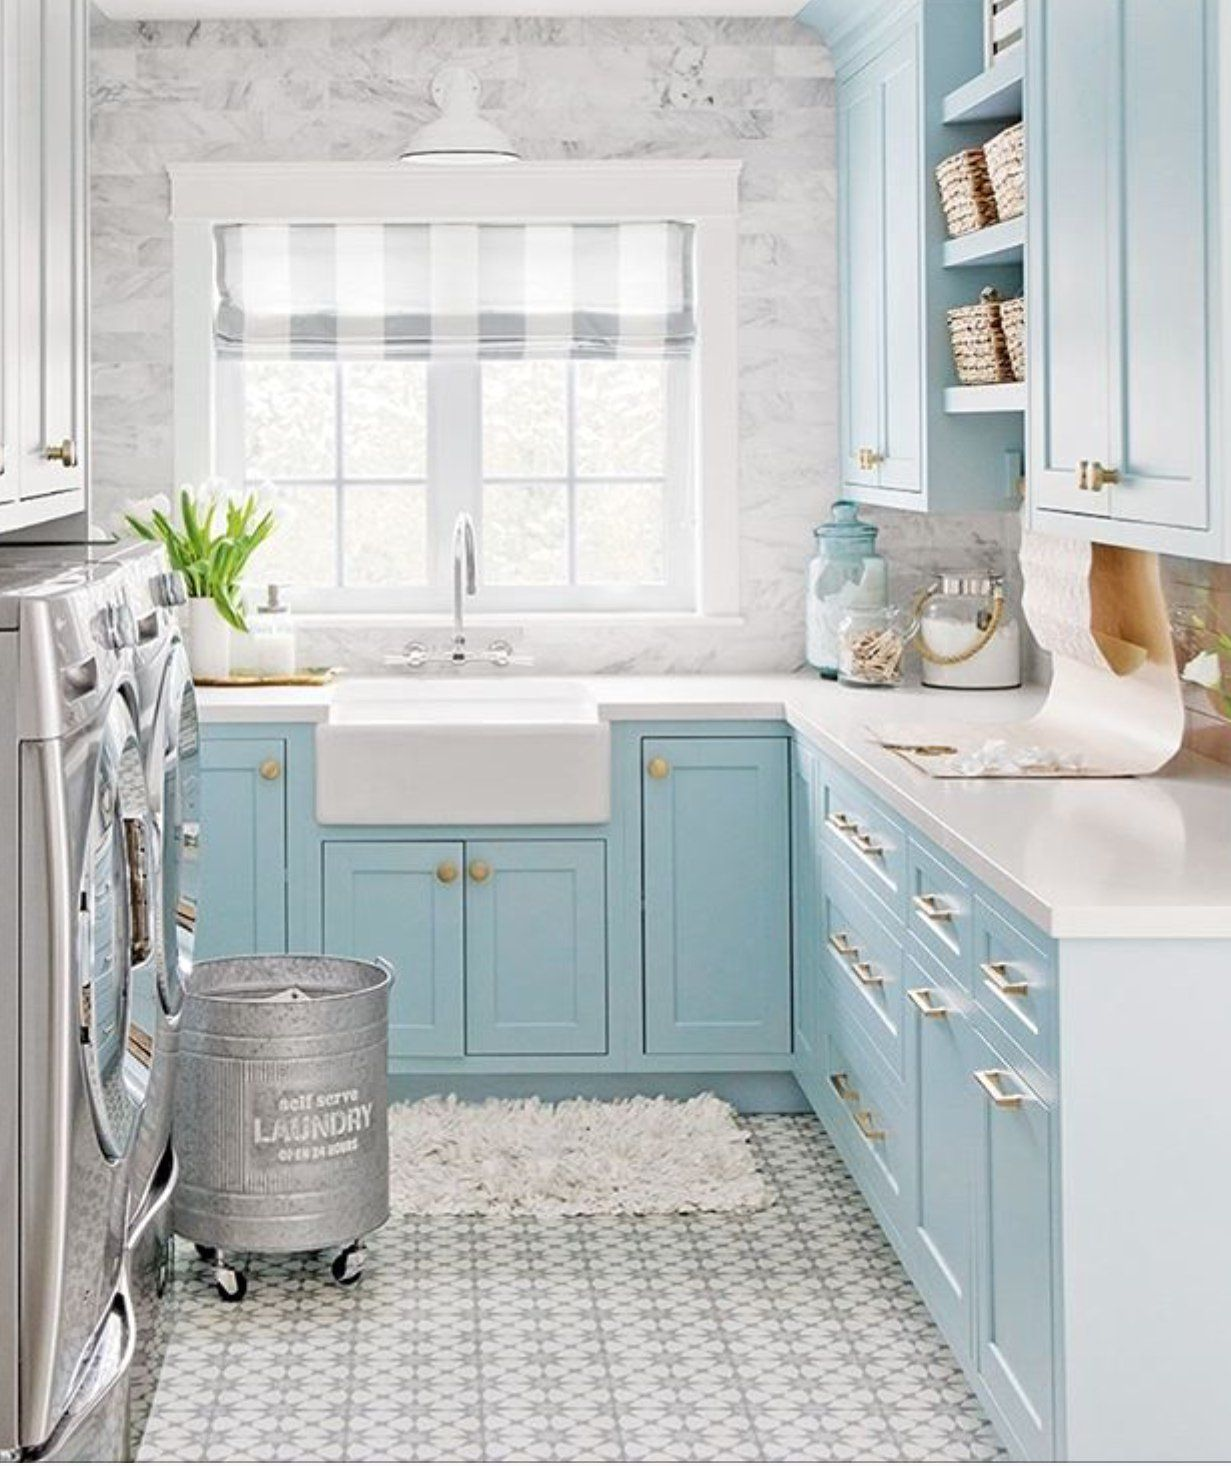 Robin Egg Blue And White Laundry Room You Can Feel Pretty While Doing The Laundry Blue Laundry Rooms Laundry Room Decor Room Makeover